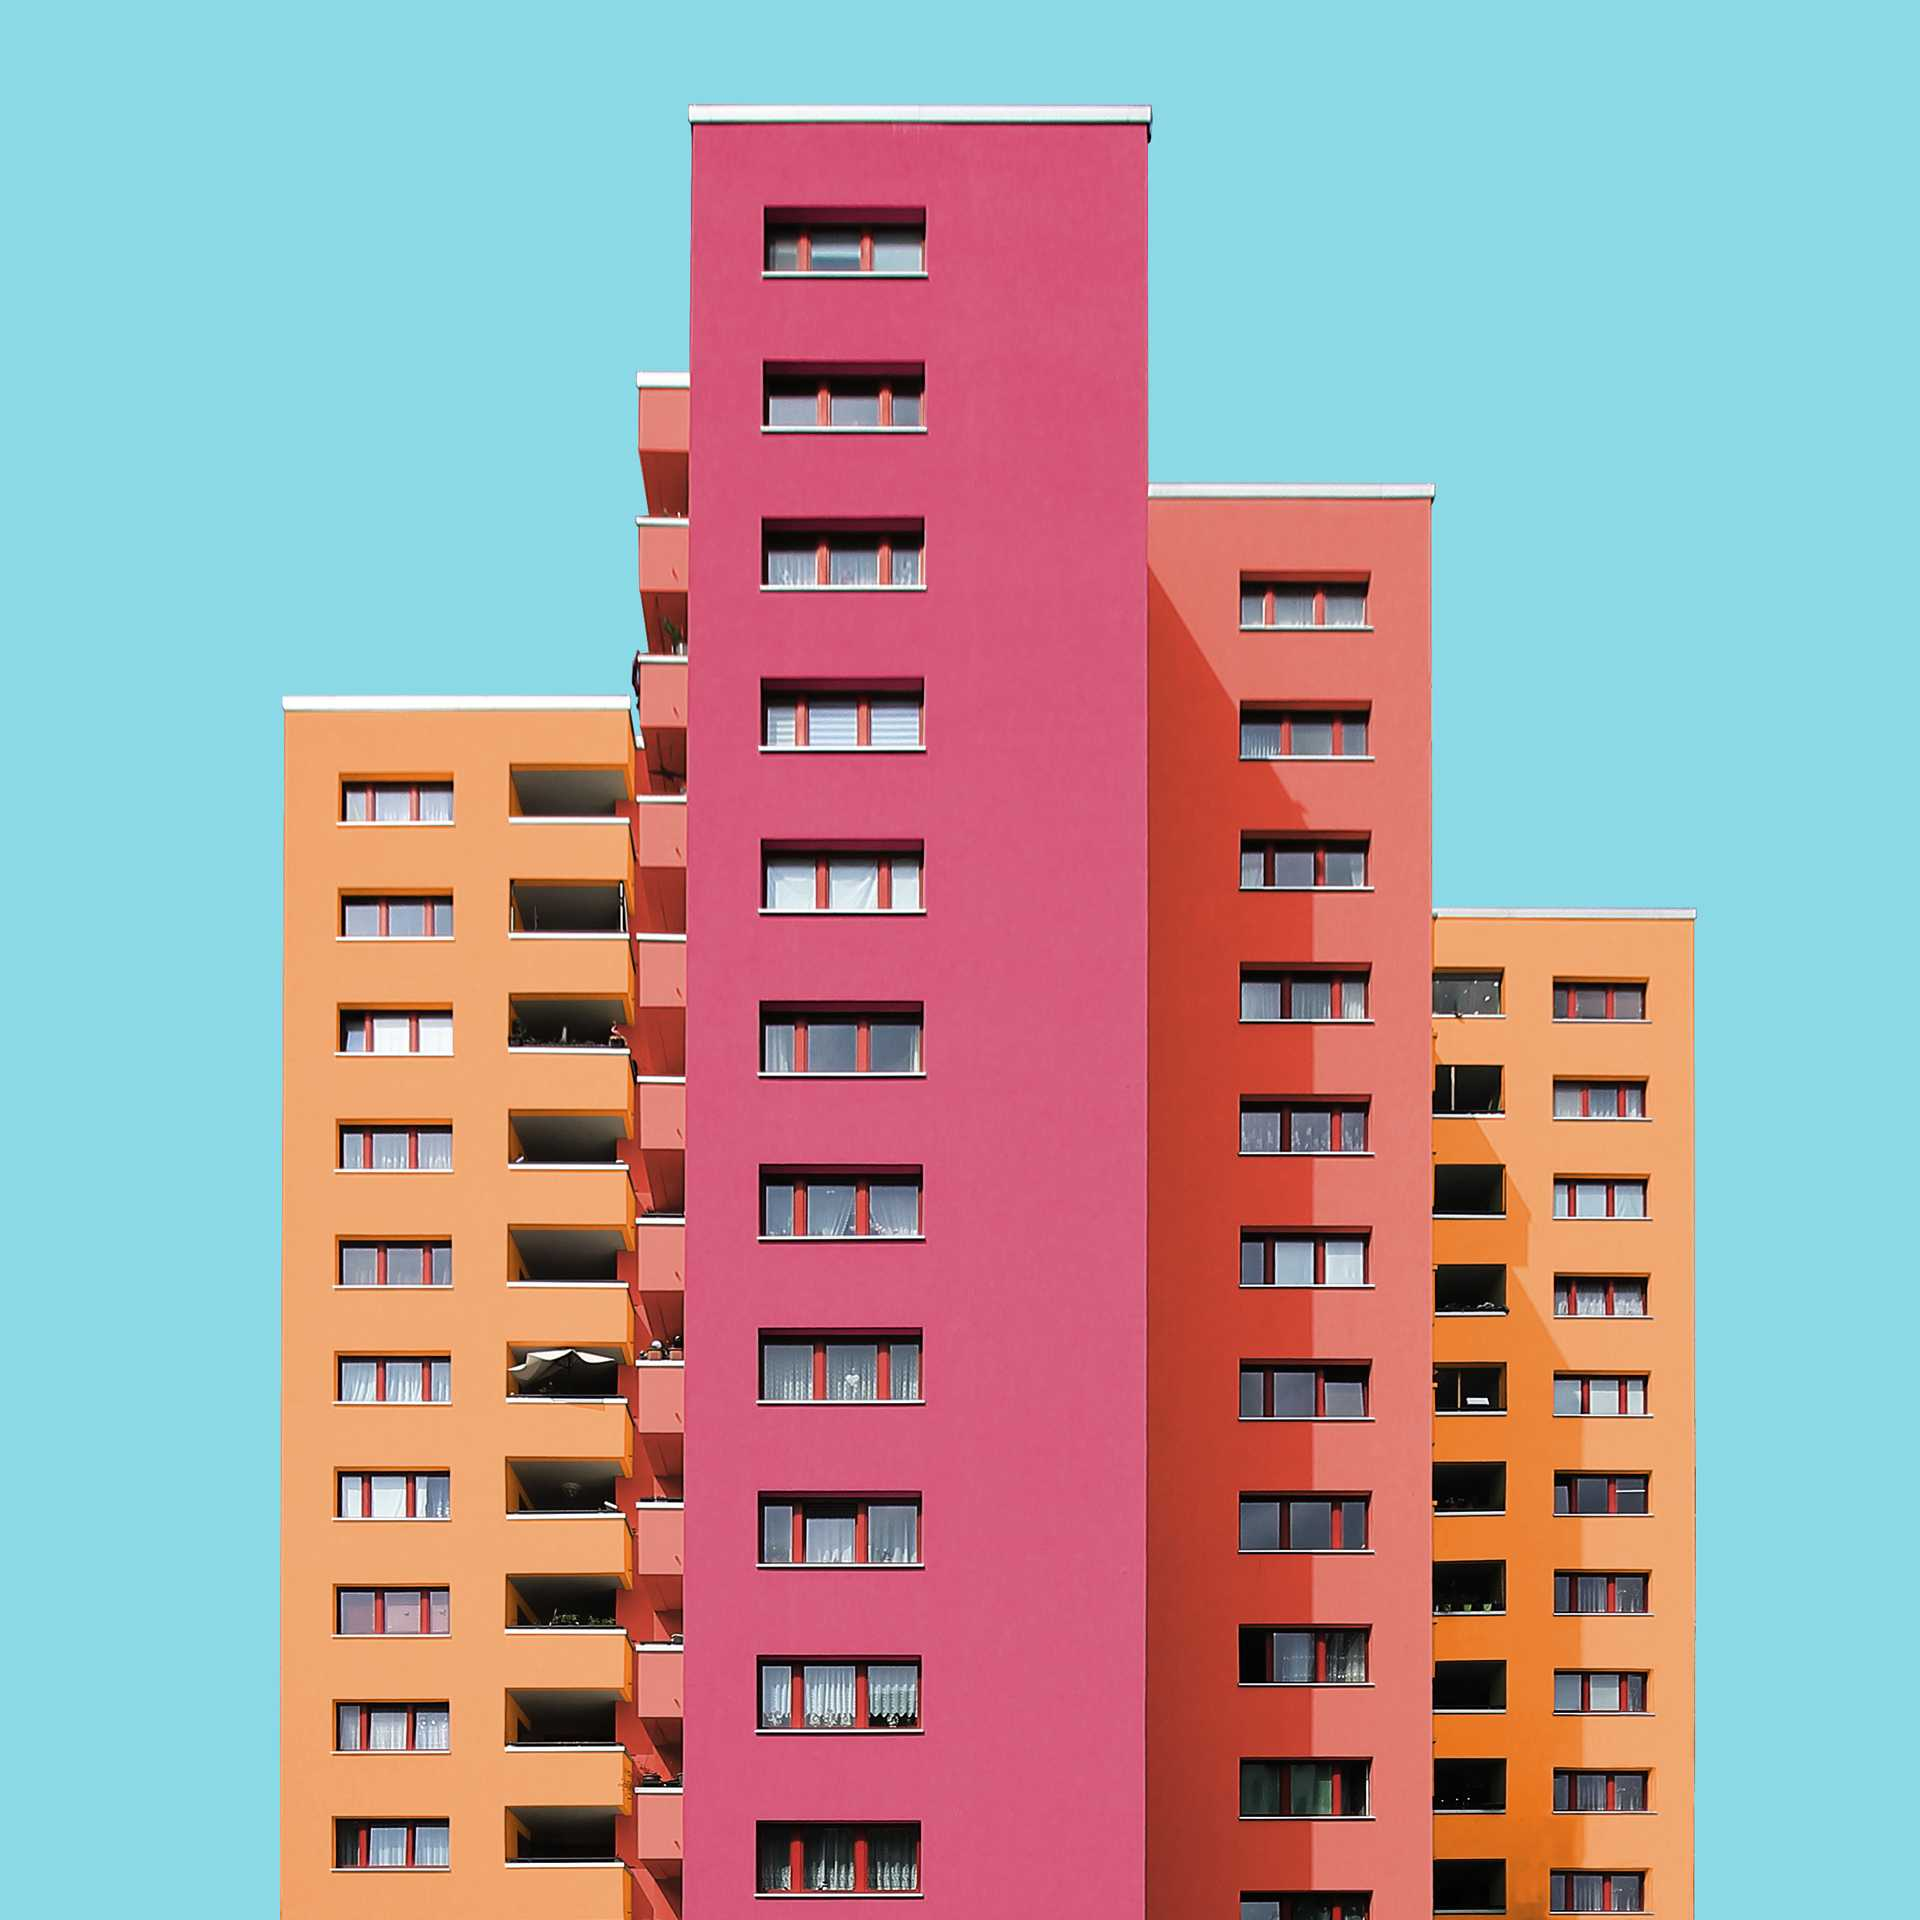 A Colorful Makeover of Architecture  - 55 3 36